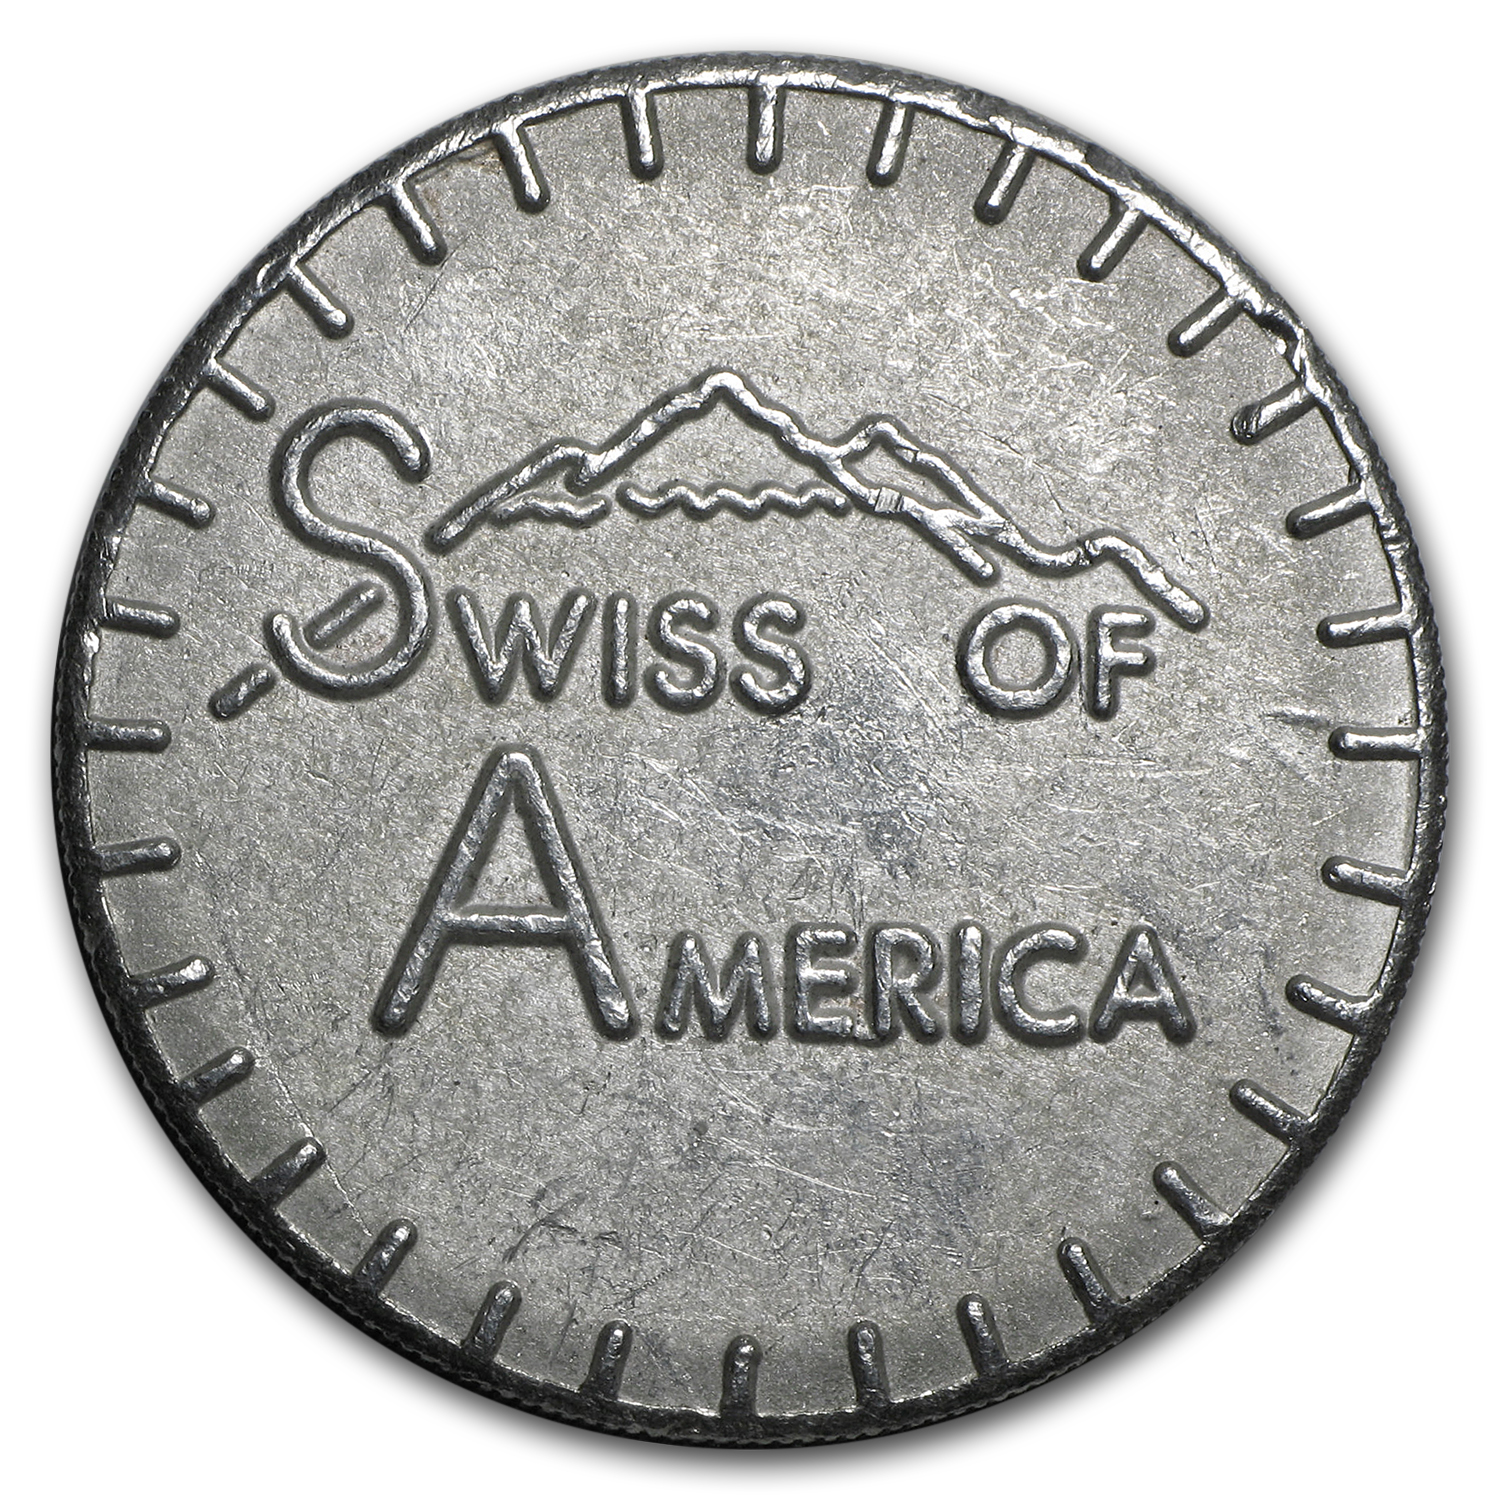 2 1/2 oz Silver Round - Swiss of America